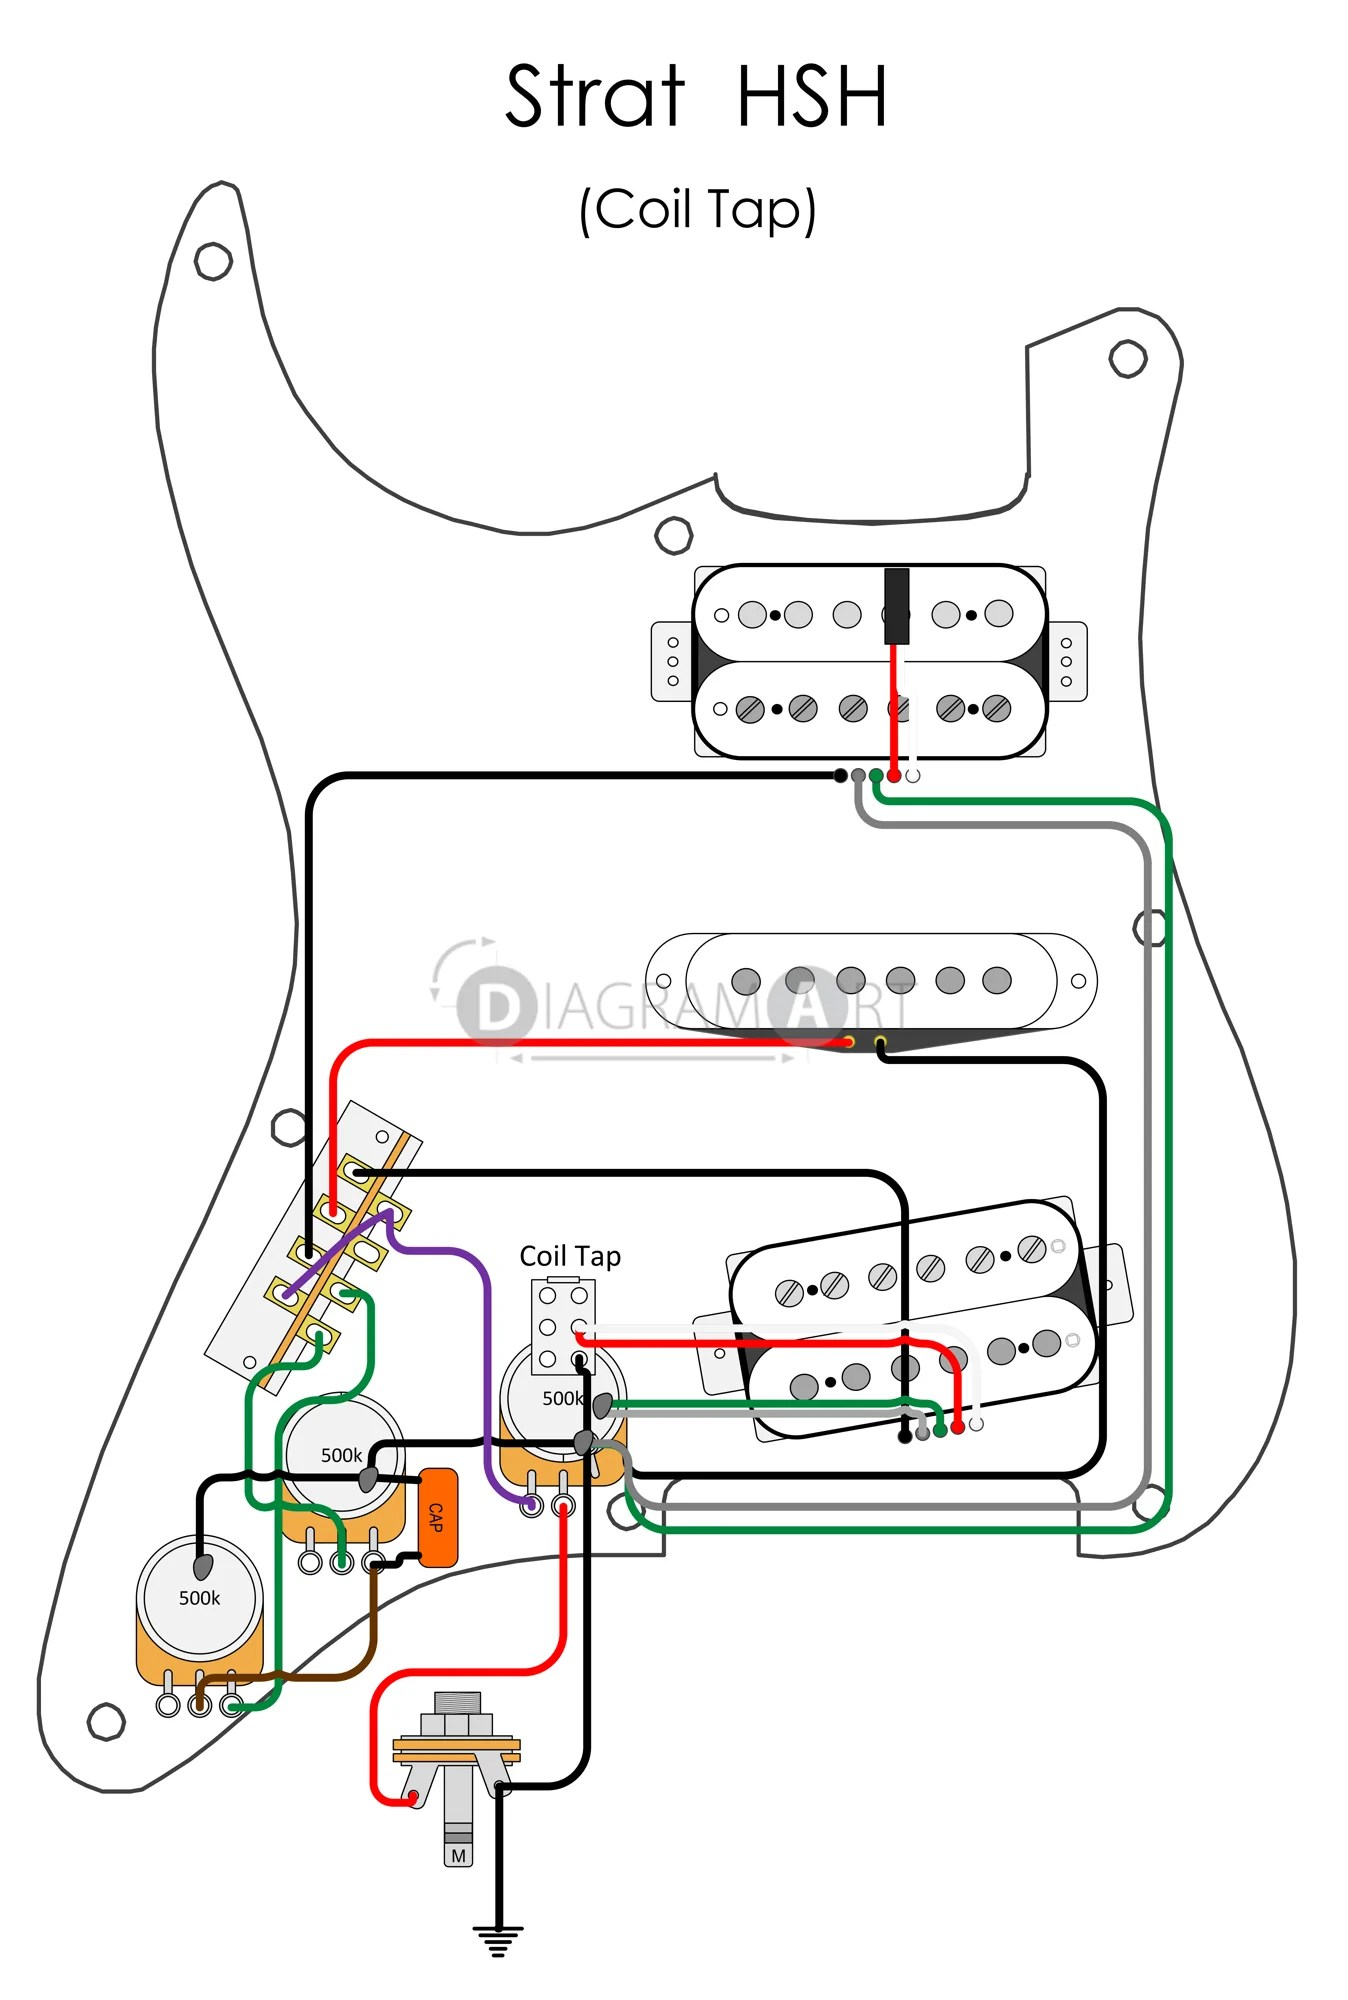 hight resolution of yamaha hsh wiring wiring diagram dat yamaha hsh wiring